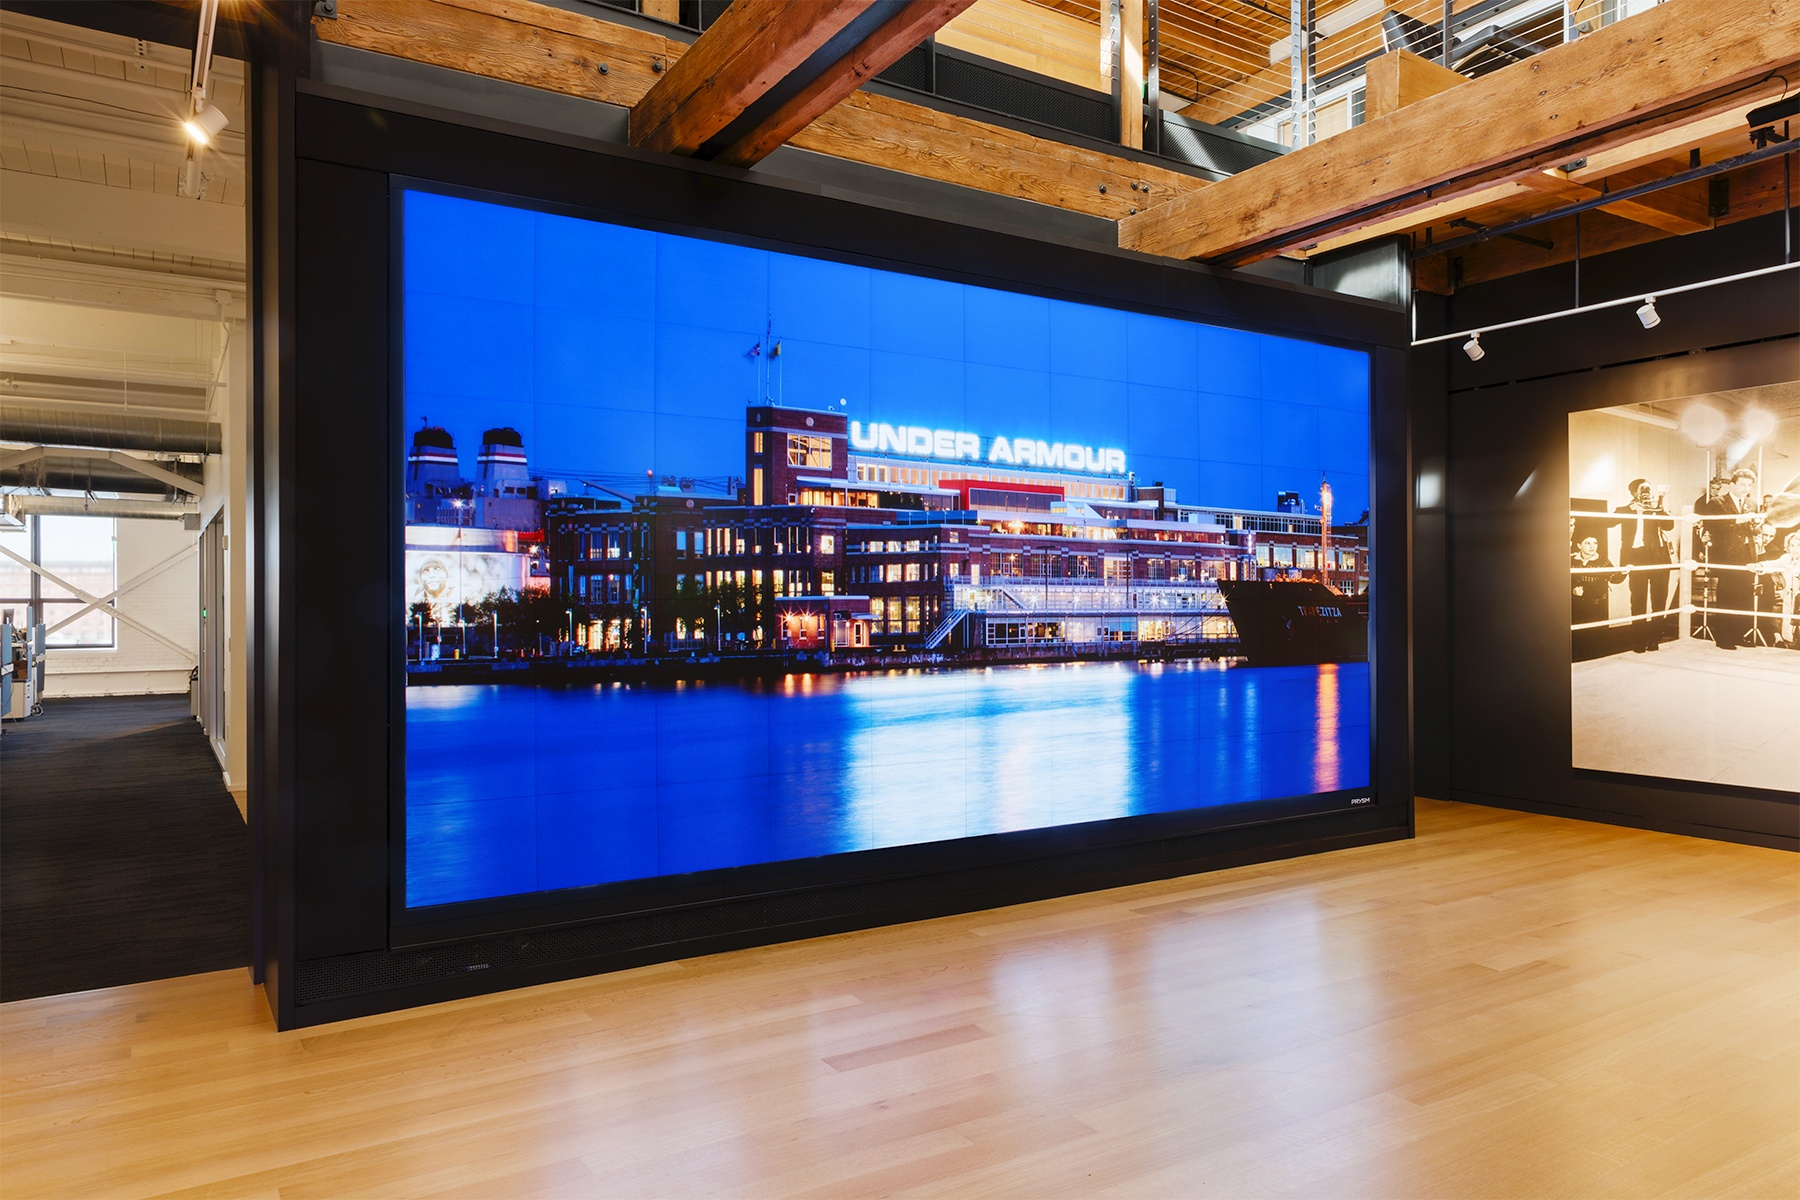 Prysm Brings State-of-the-Art Video Wall to Under Armour